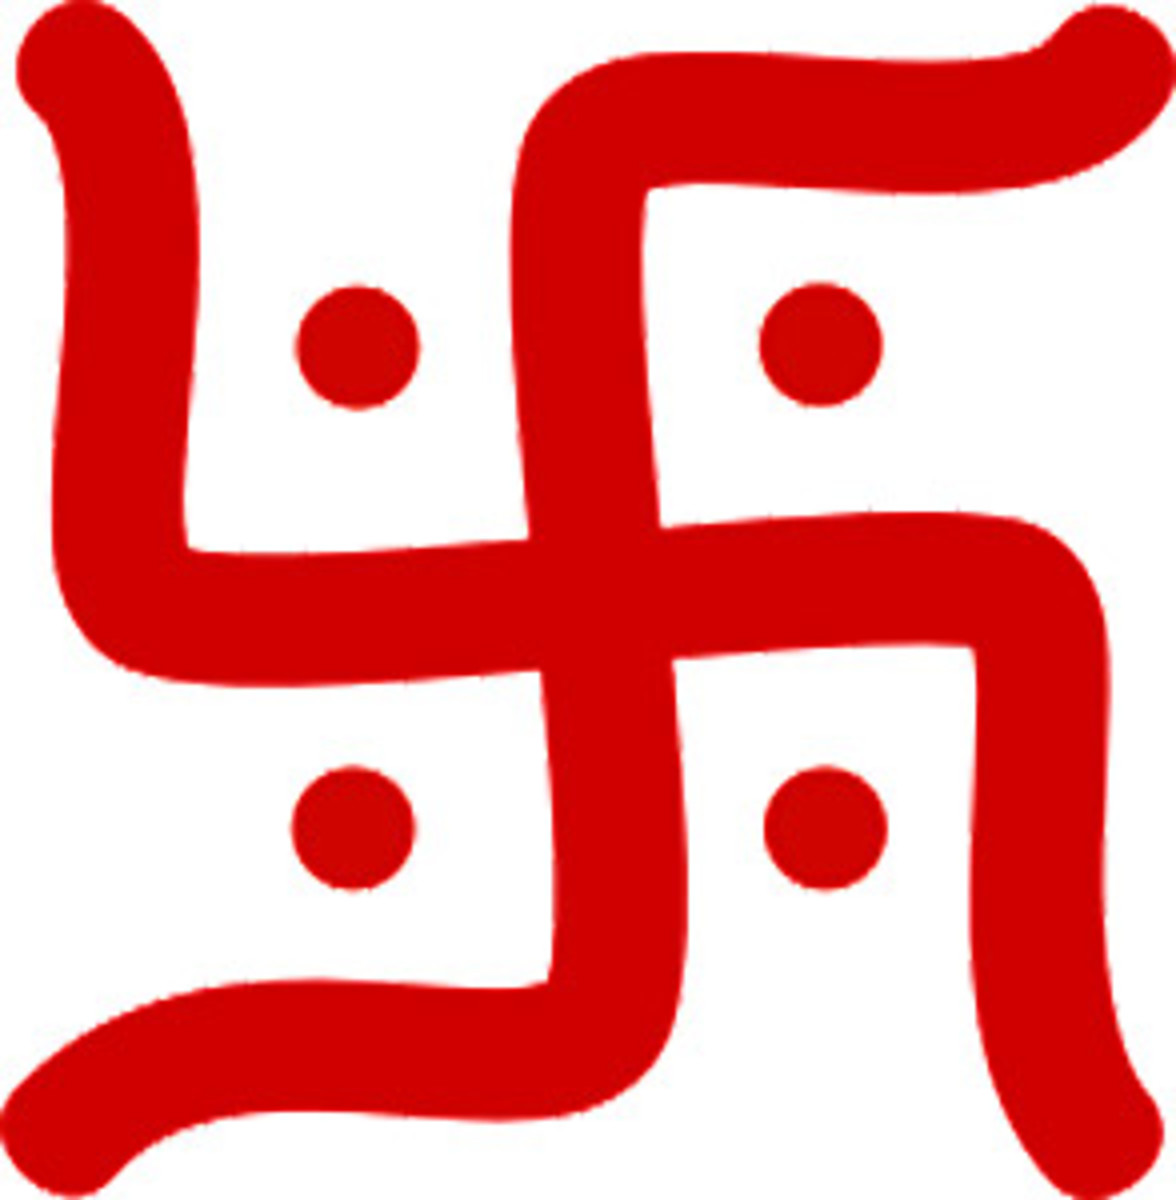 Swastika is one of the most revered Symbols used in India. It is associated with Indian Culture and religions like Hinduism, Jainism, Sikhism and Buddhism. The Swastik Symbol is also widely used in Feng Shui  and Vastu Shastra as a Symbol of    auspi